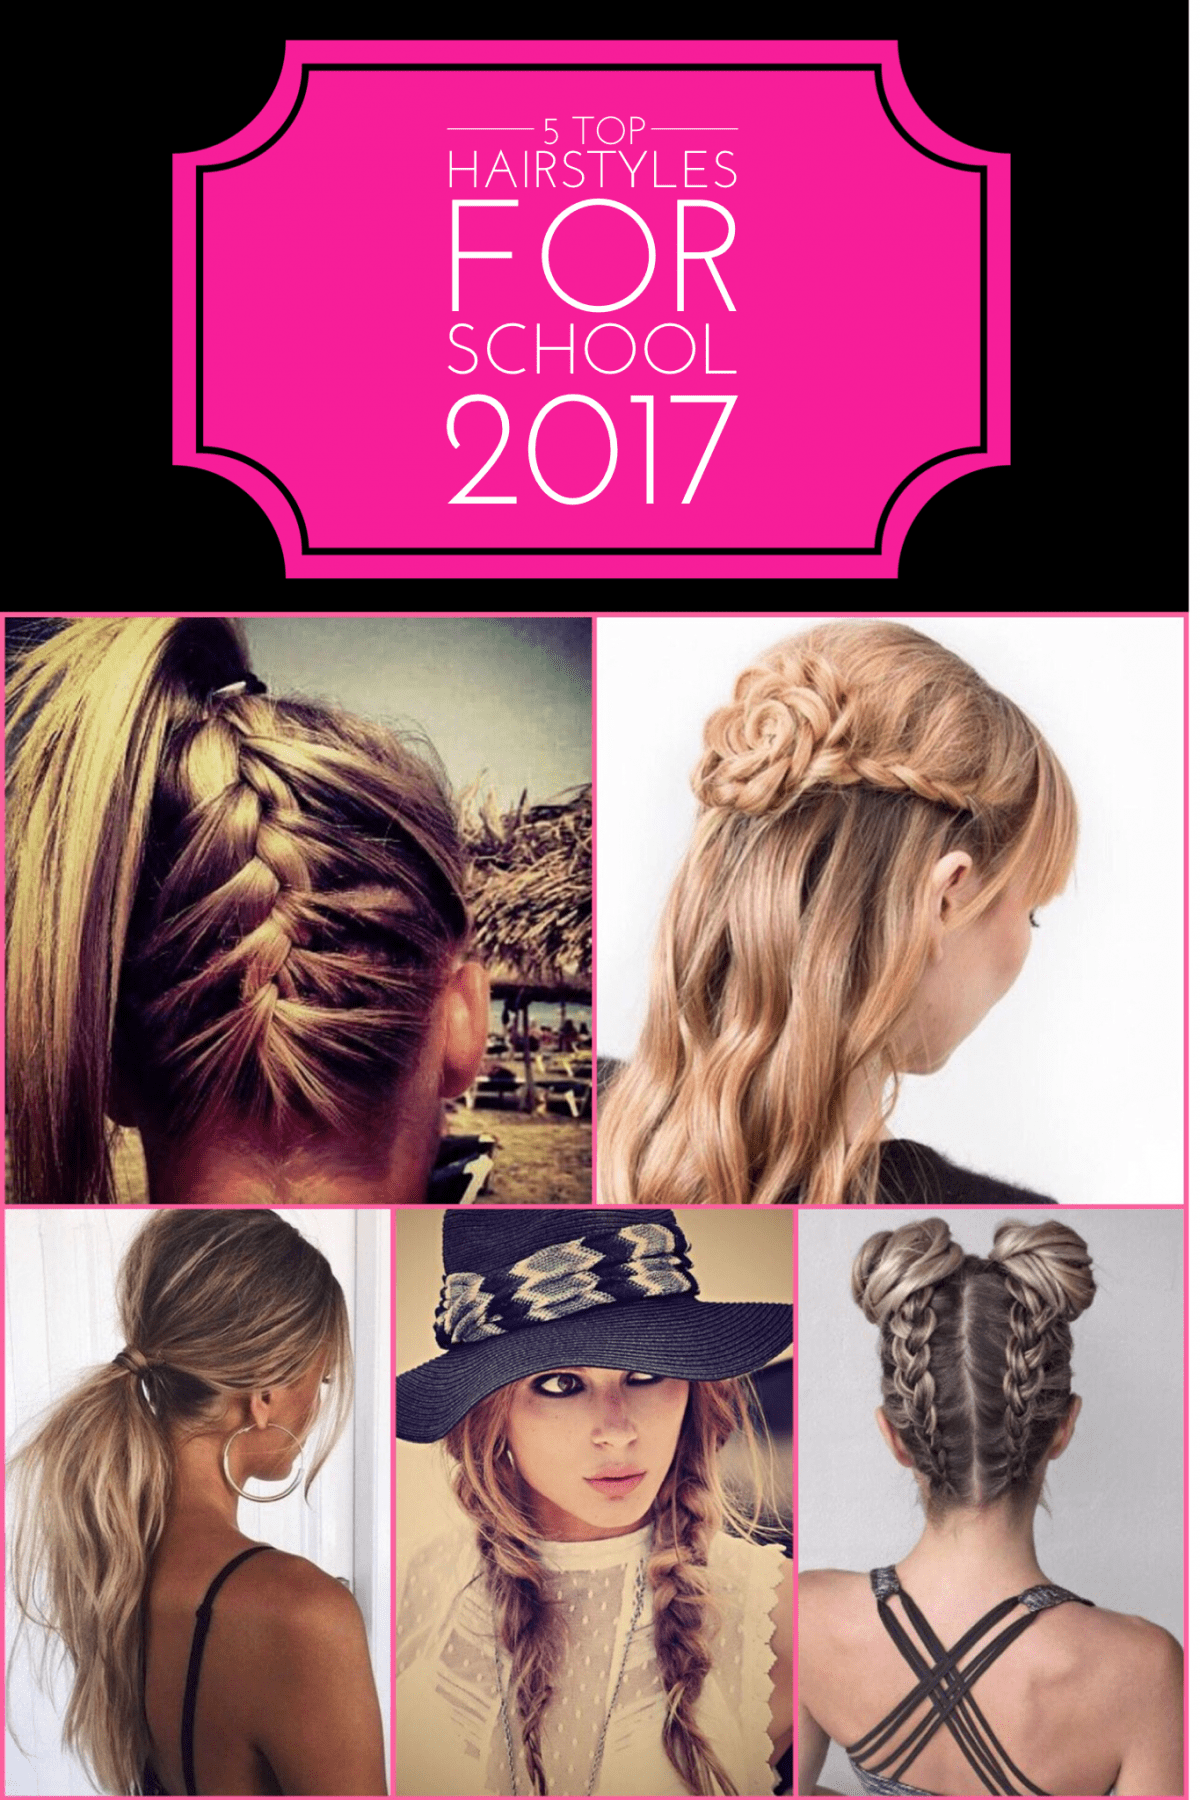 10 Ridiculously Easy Hairstyles For School 2020 (Tutorials Included)